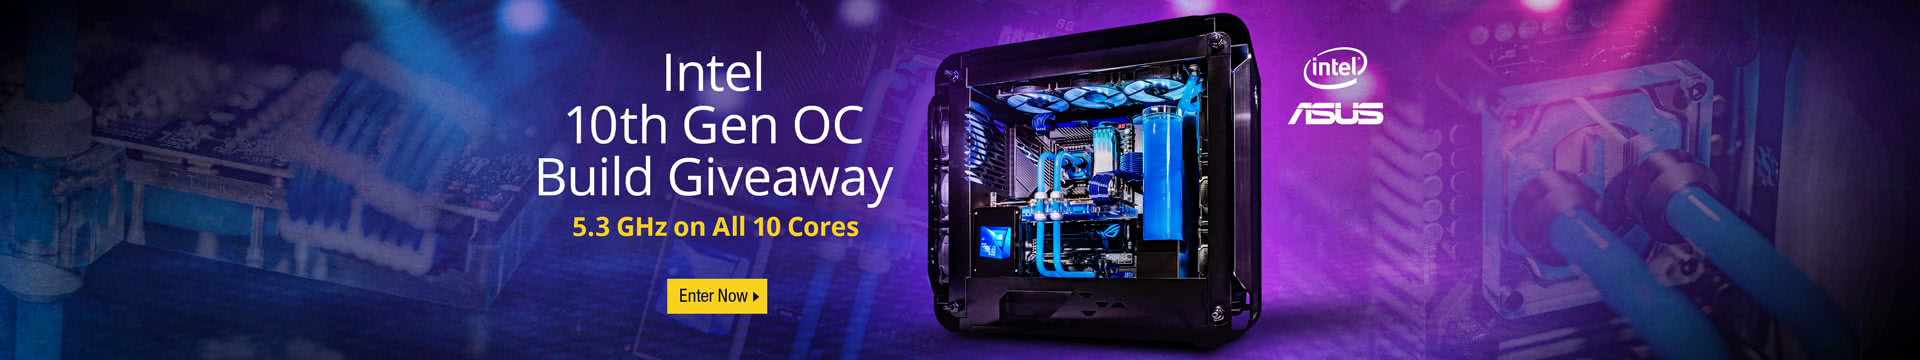 Intel 10th Gen OC Build Giveaway